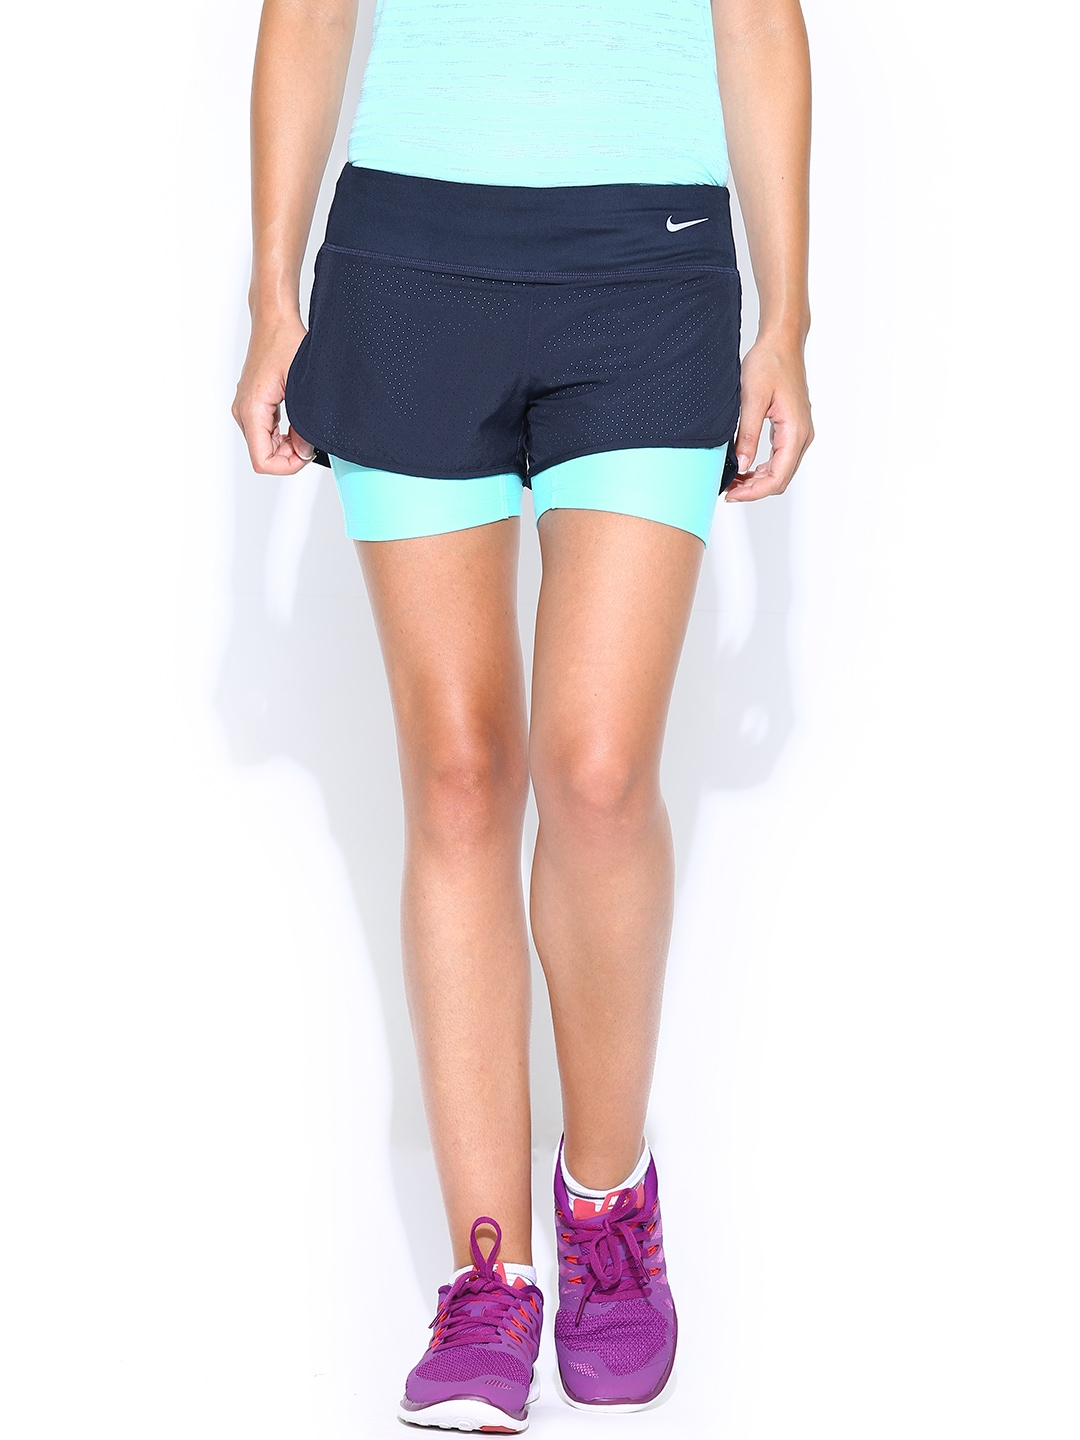 Nike womens running shorts with liner - Buy Nike Women Navy Perforated Rival 2in1 Running Shorts Shorts For Women Myntra